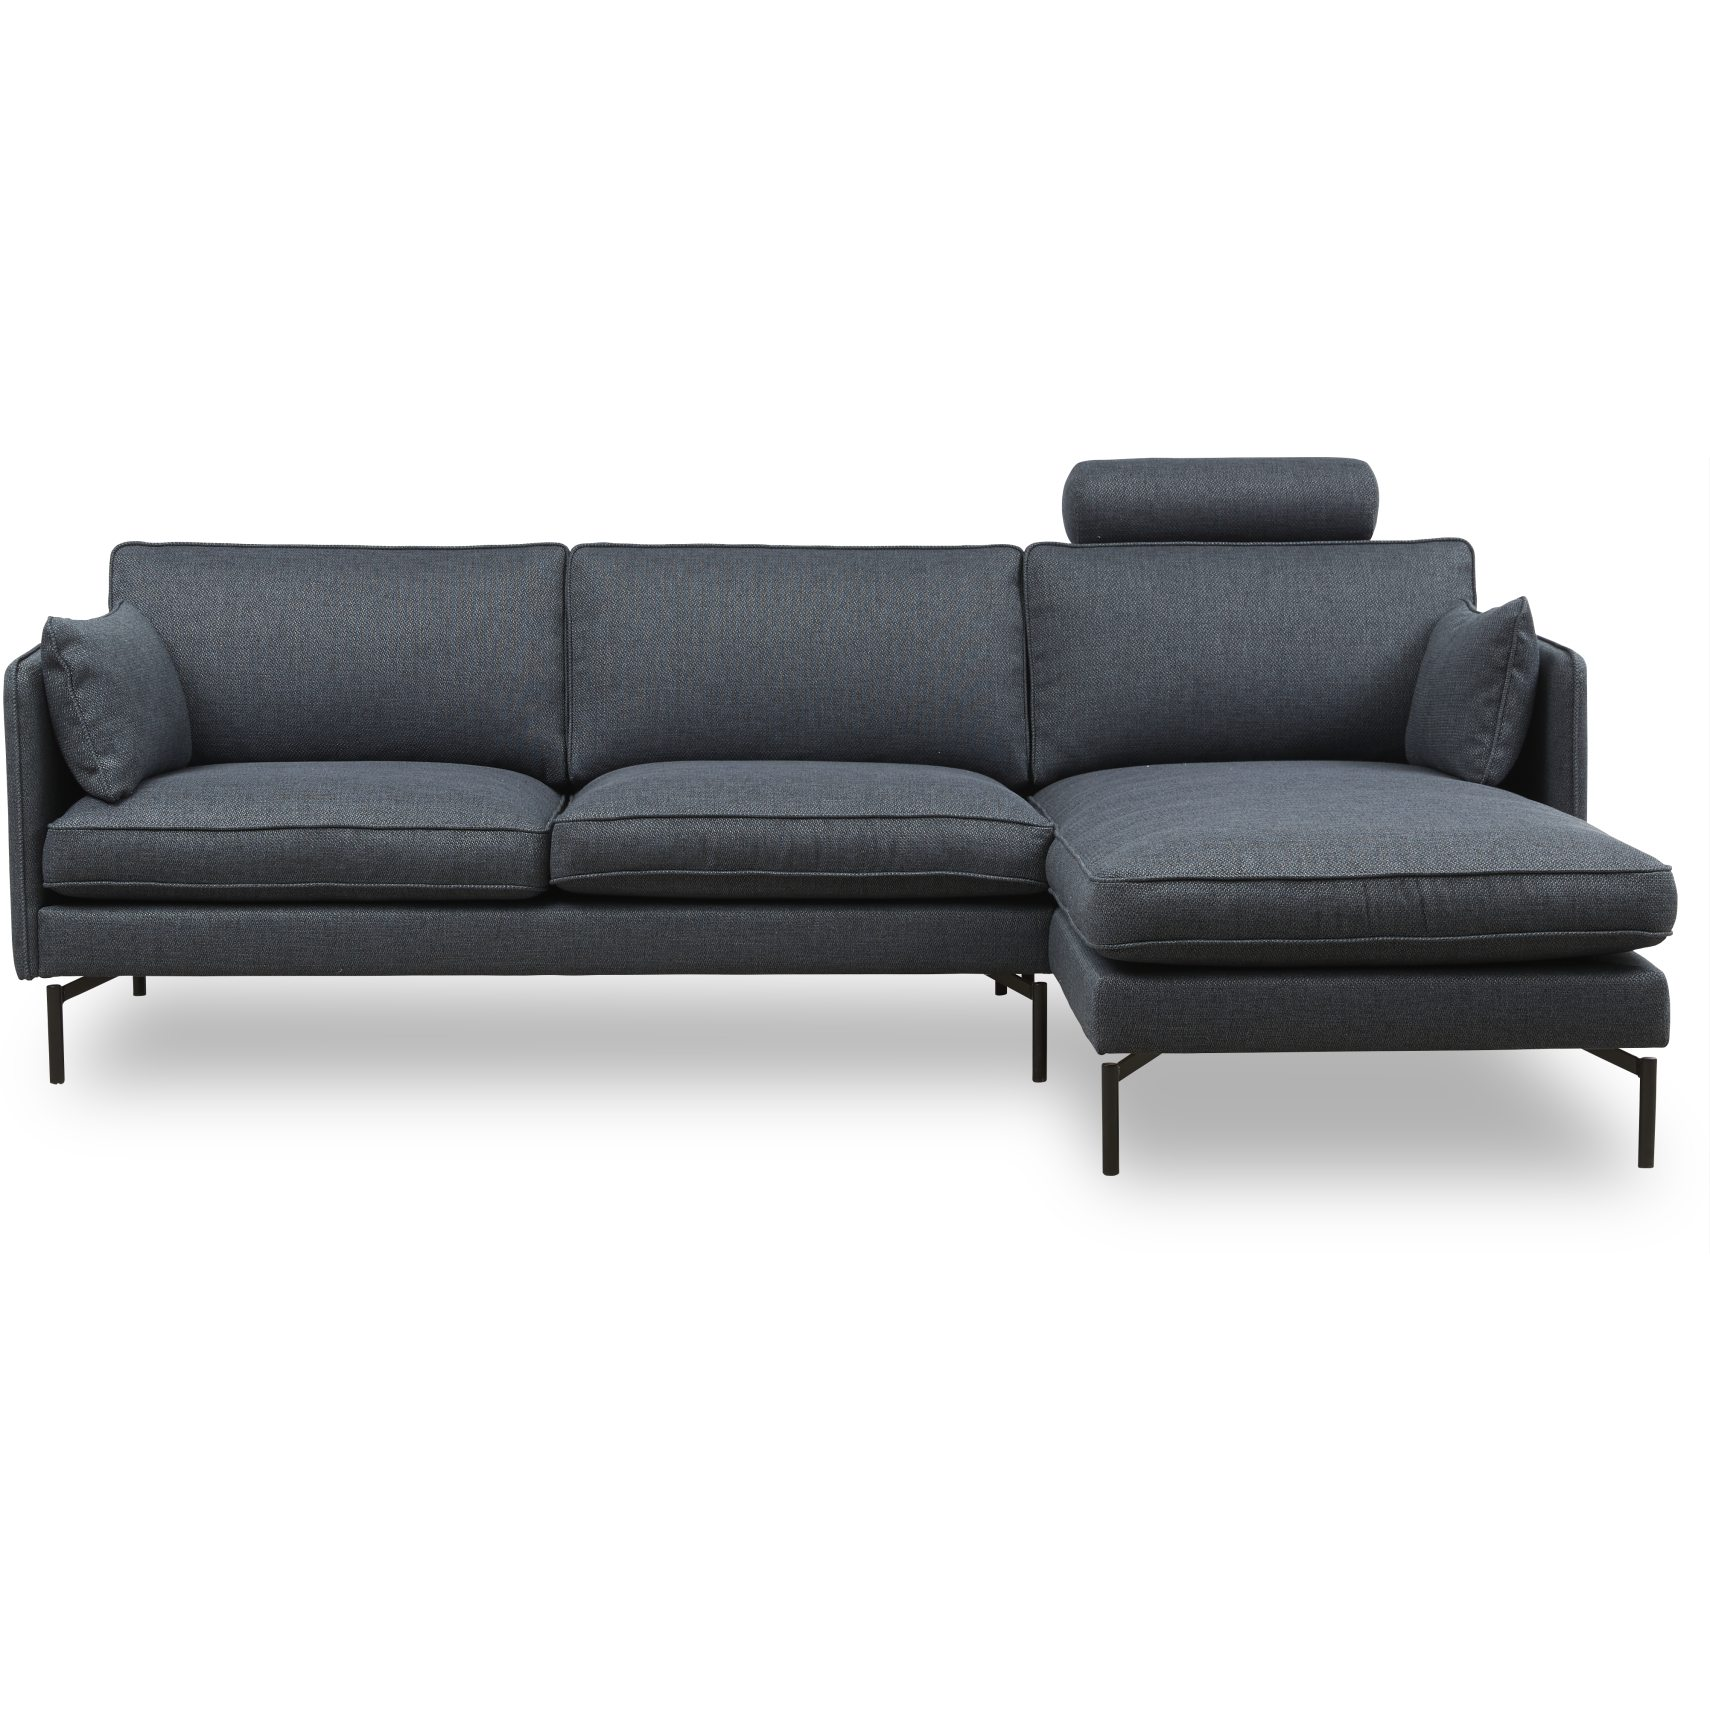 Tebis Sofa med chaiselong